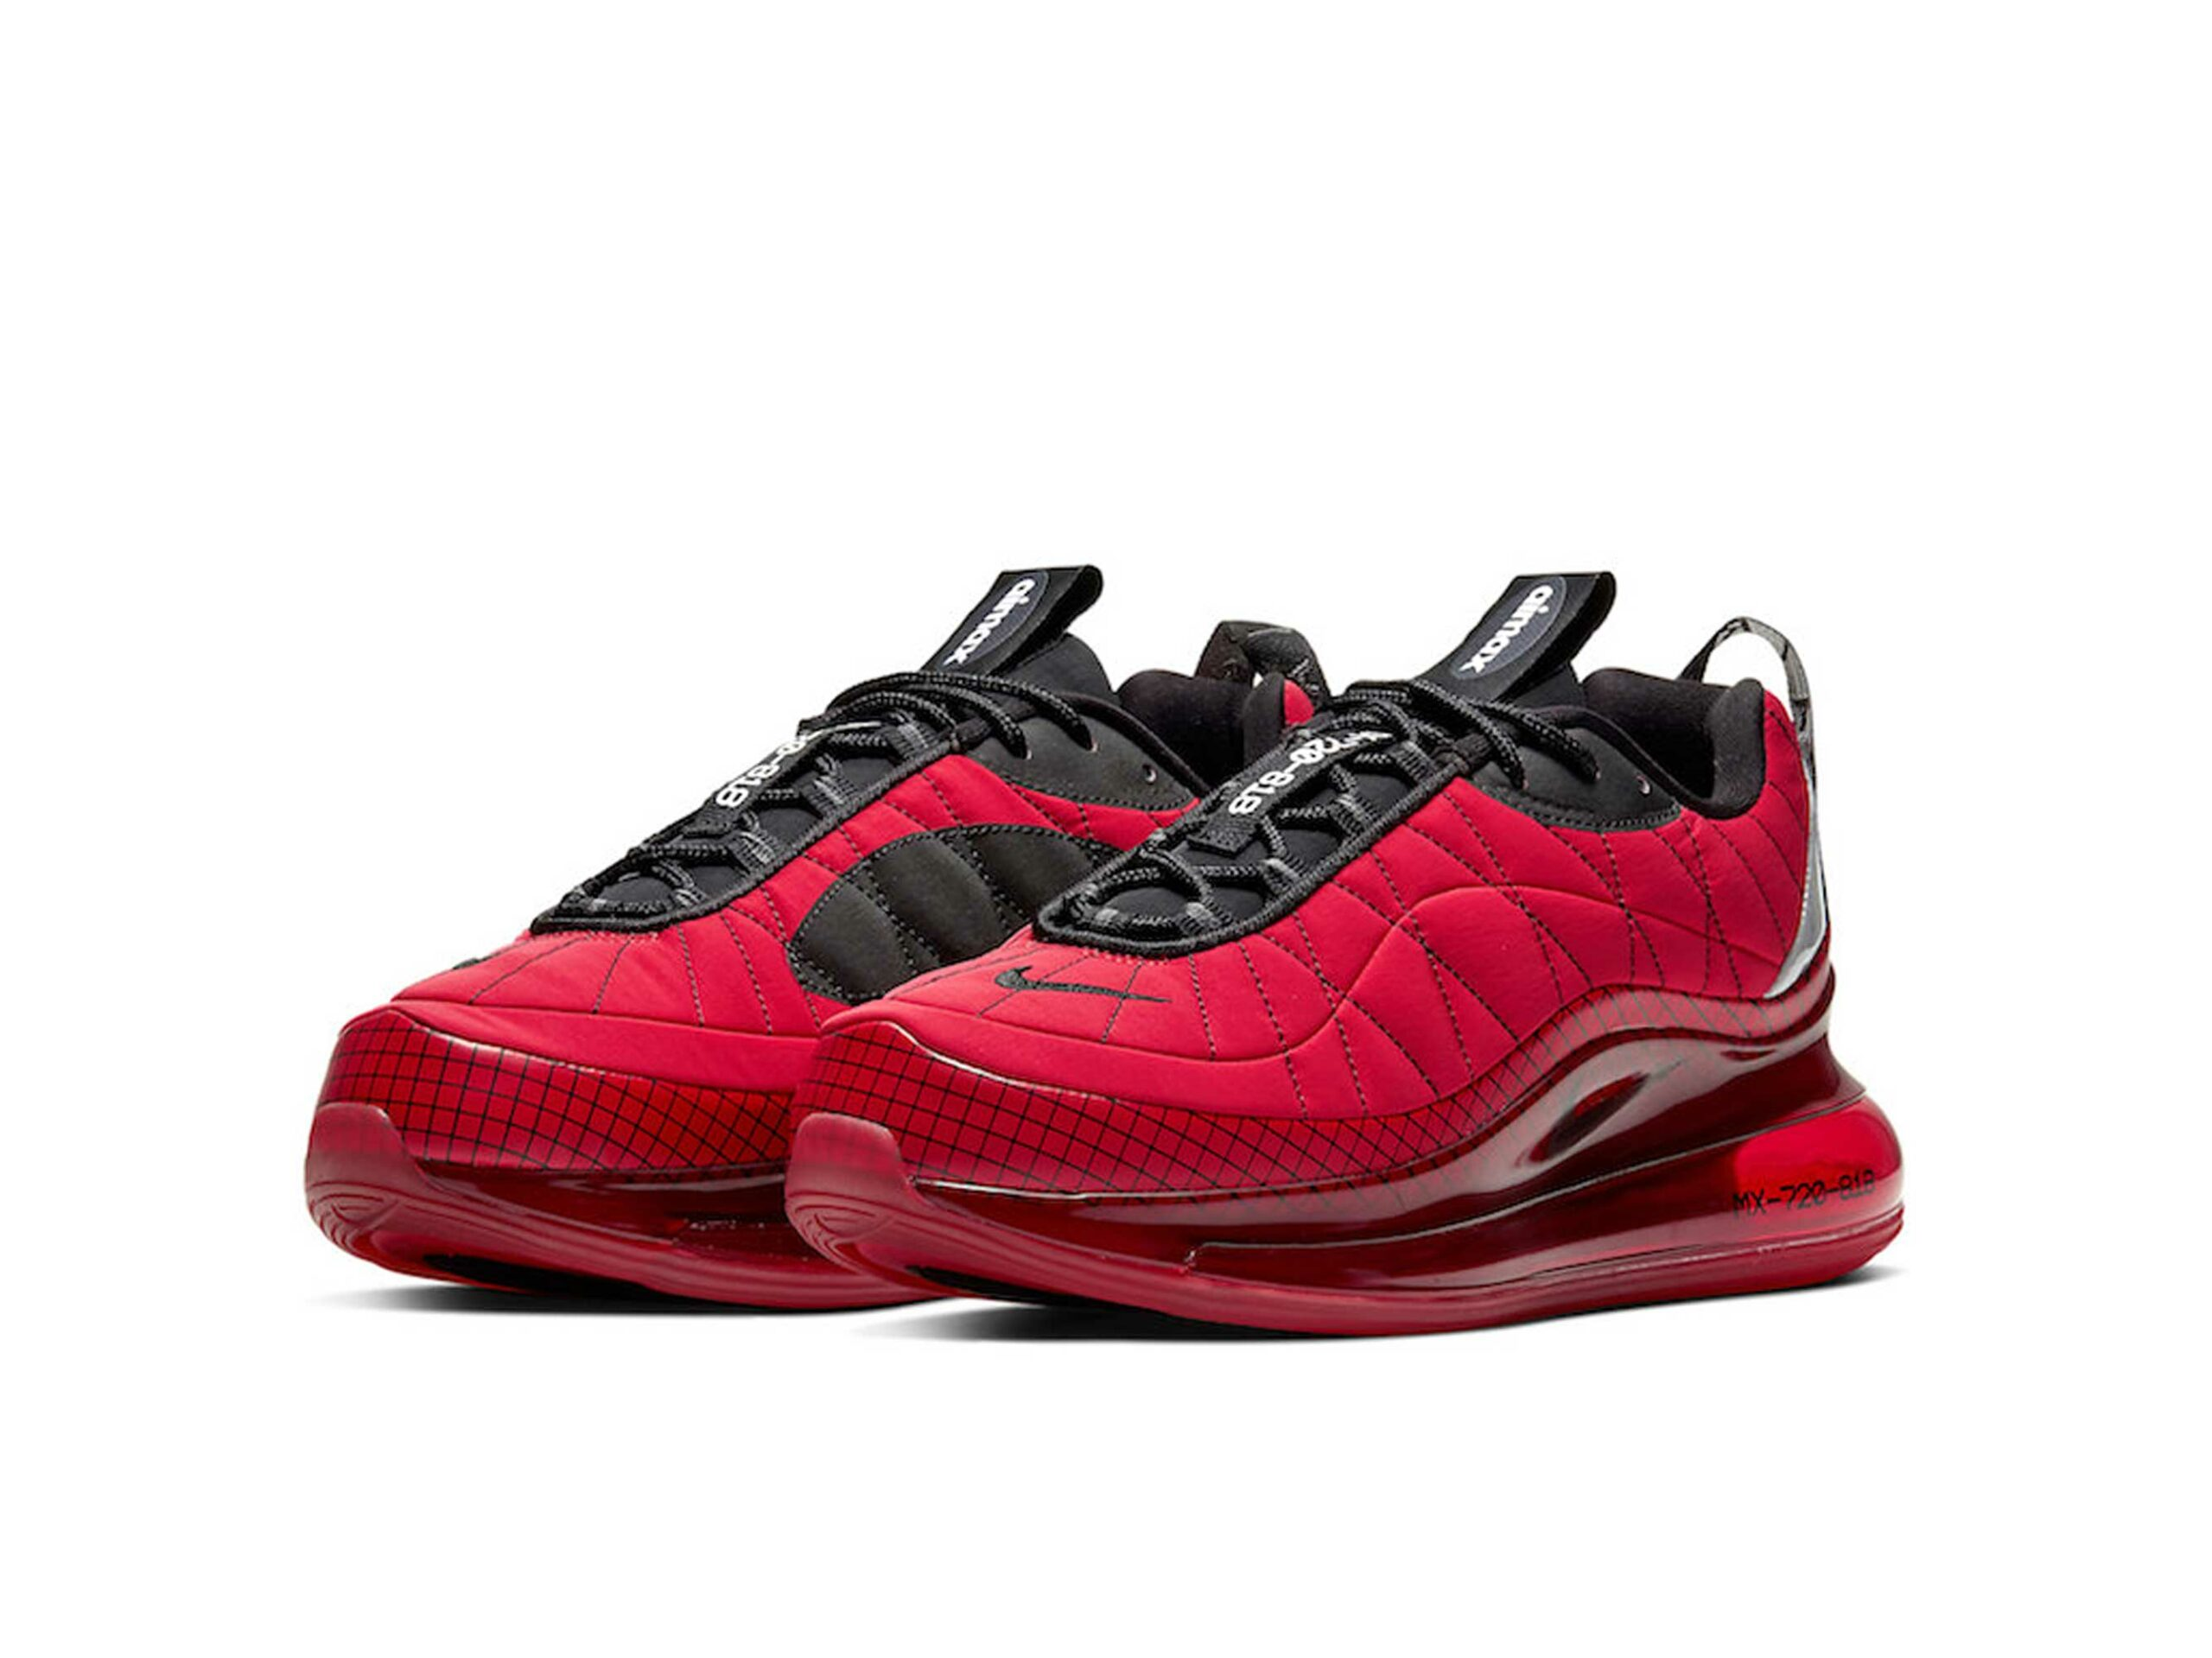 nike air max 720-818 university red ci3871_600 купить